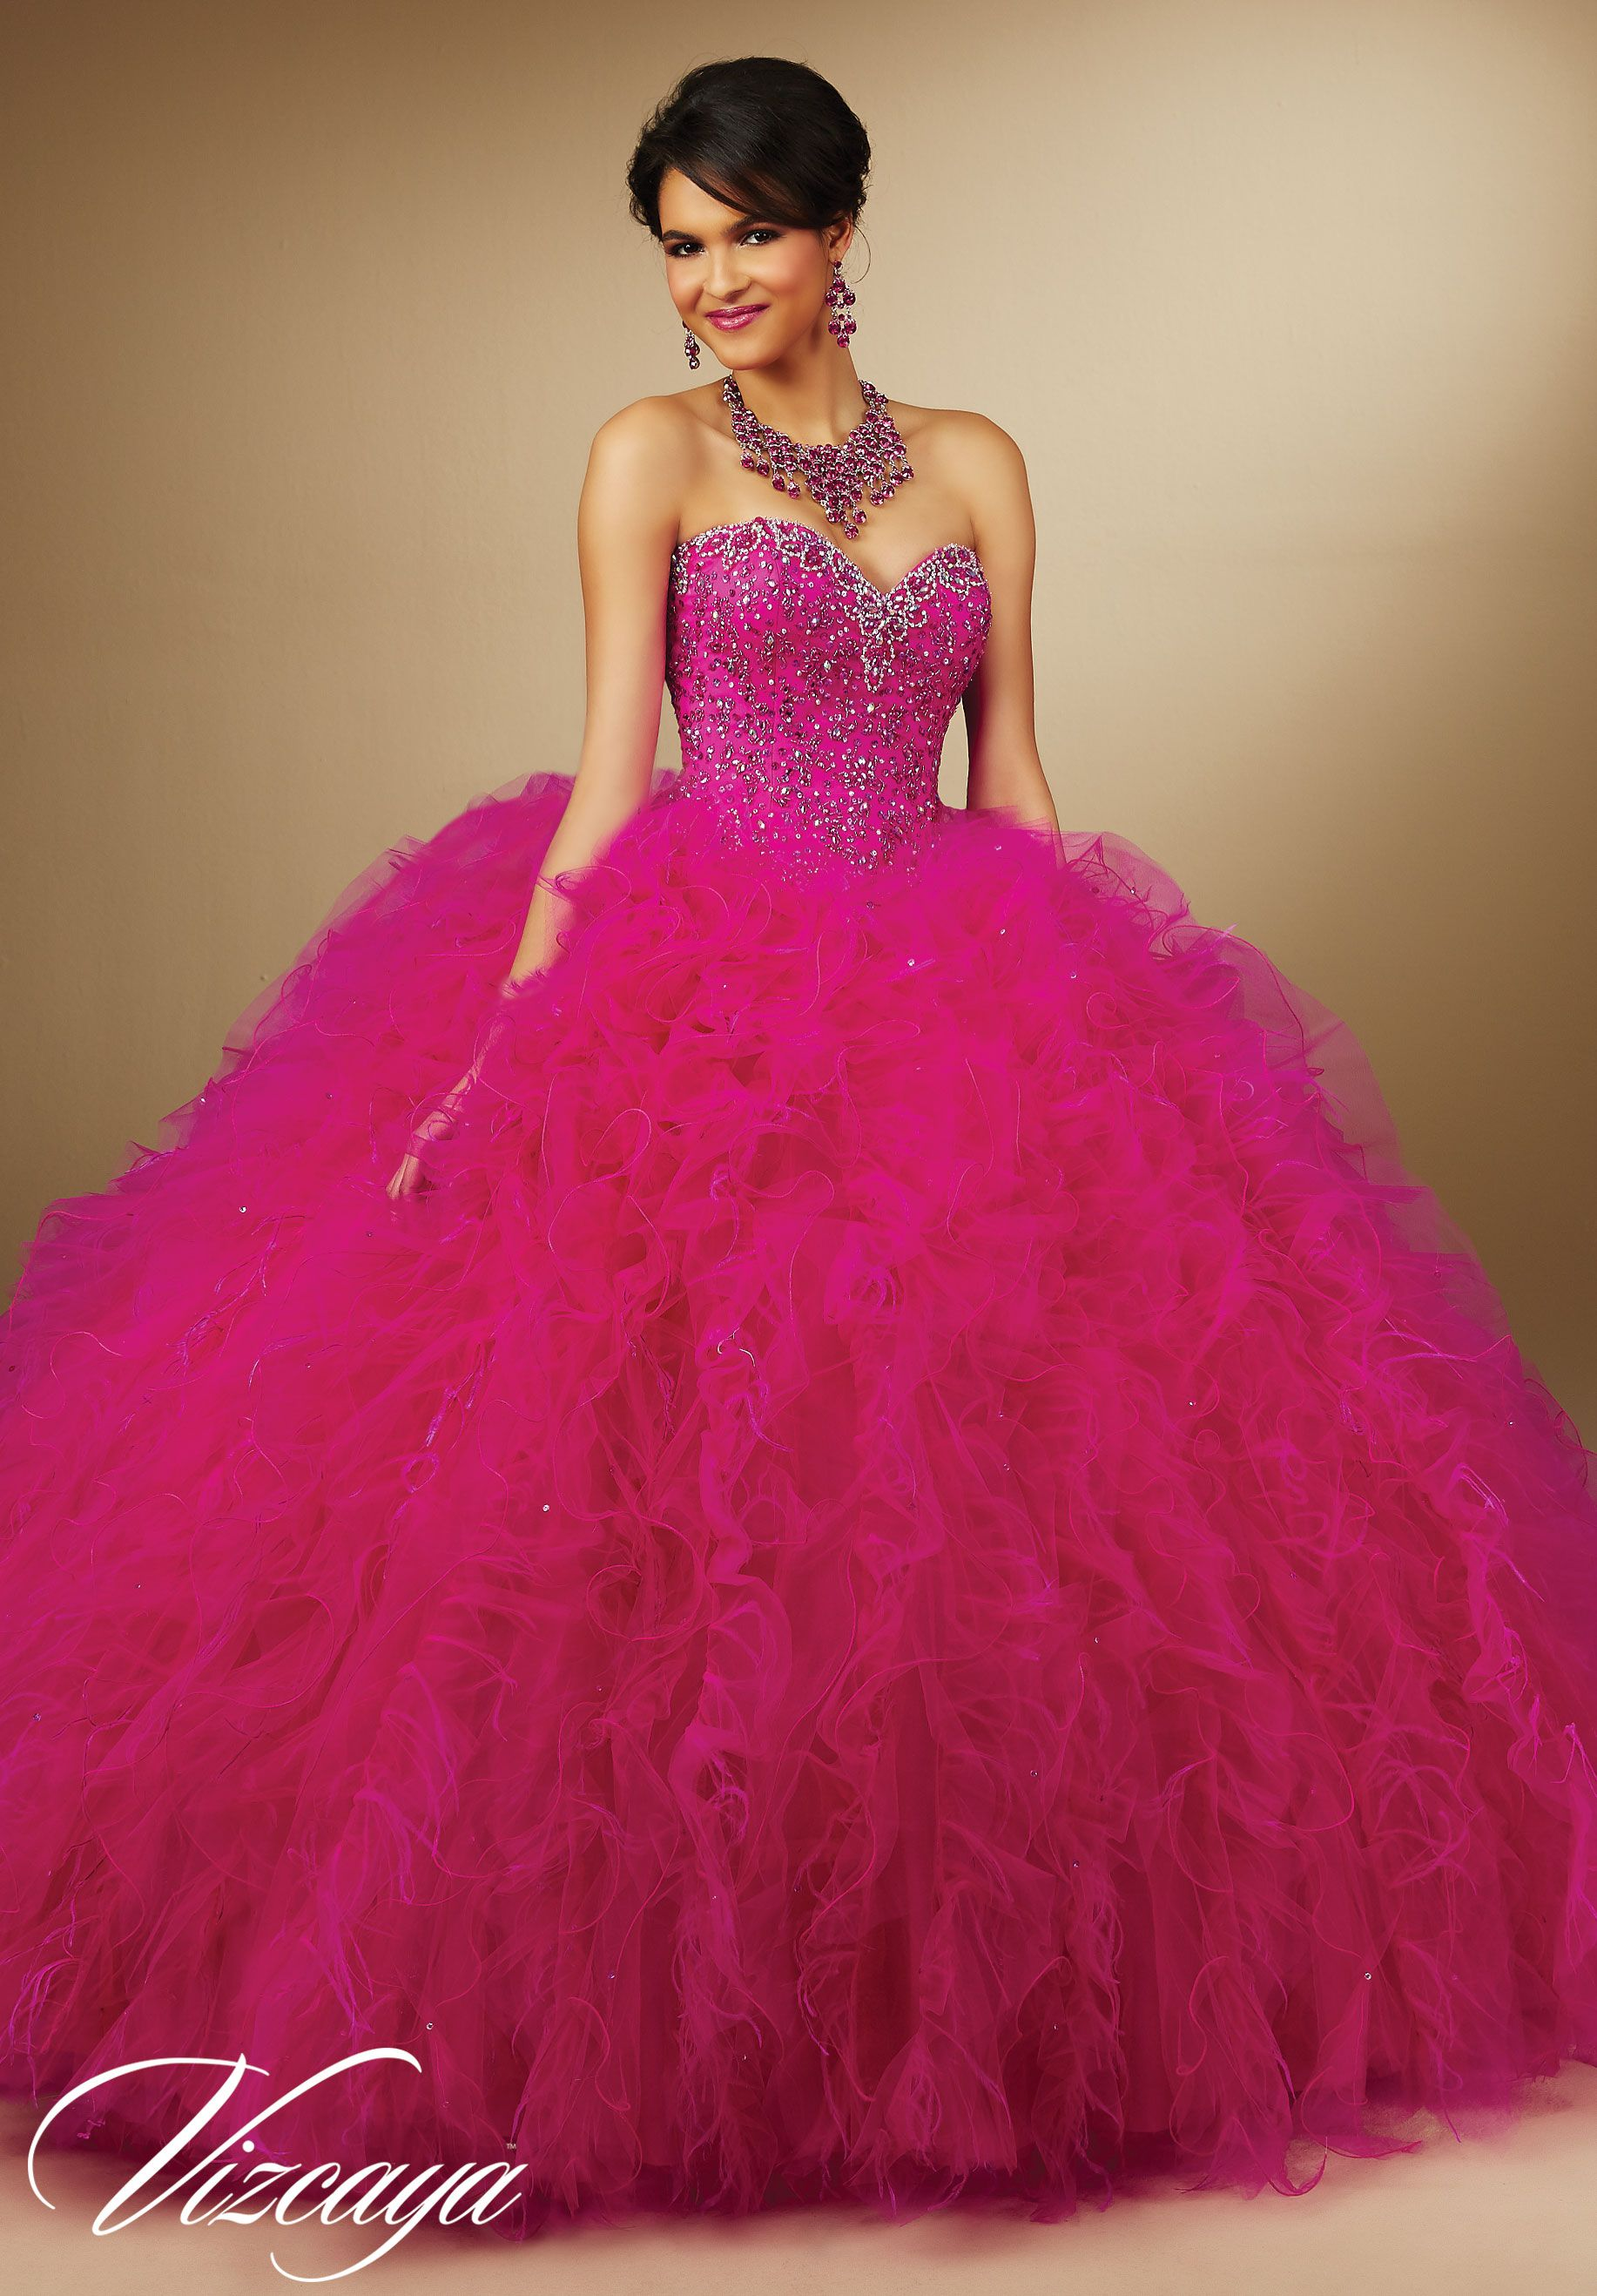 Pink Embroidery and Beading Ruffled Tulle Feathers Quinceanera Dress ...